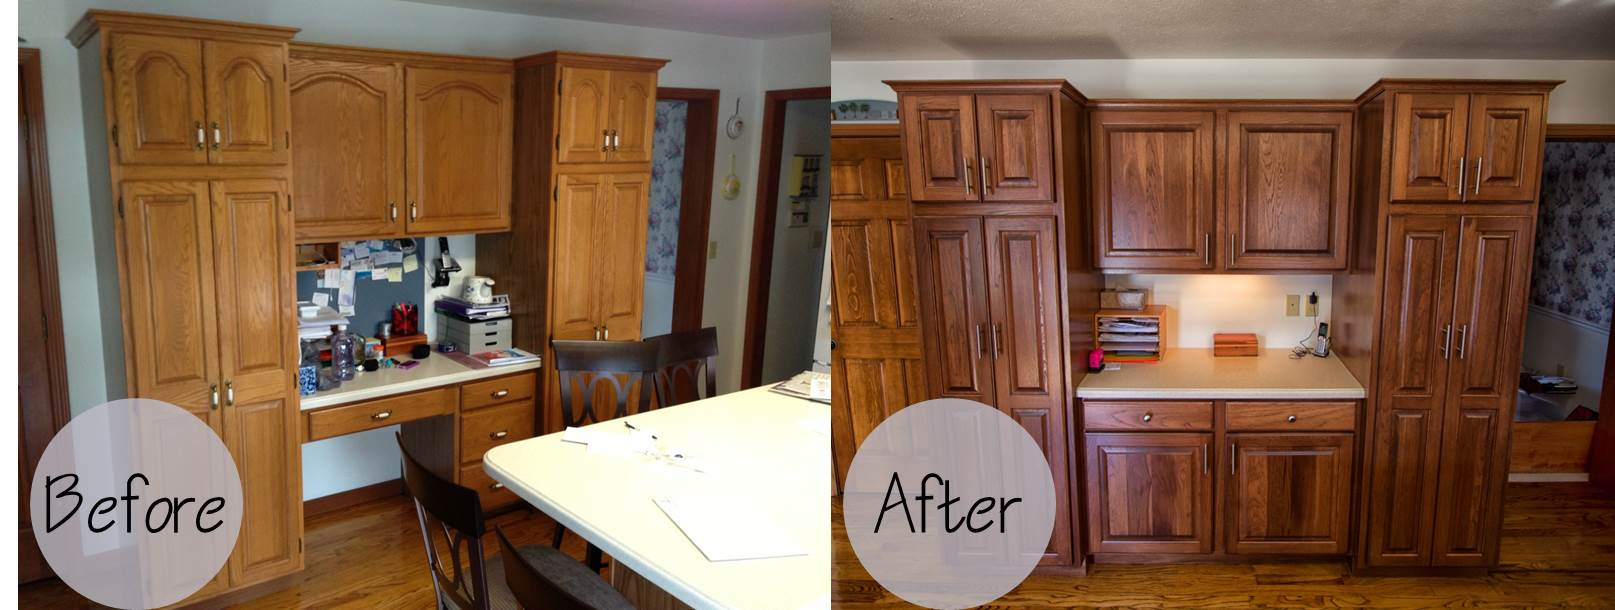 Lower Southampton Cabinet Refacing Kitchen Cabinet - Refinishing kitchen cabinets before and after